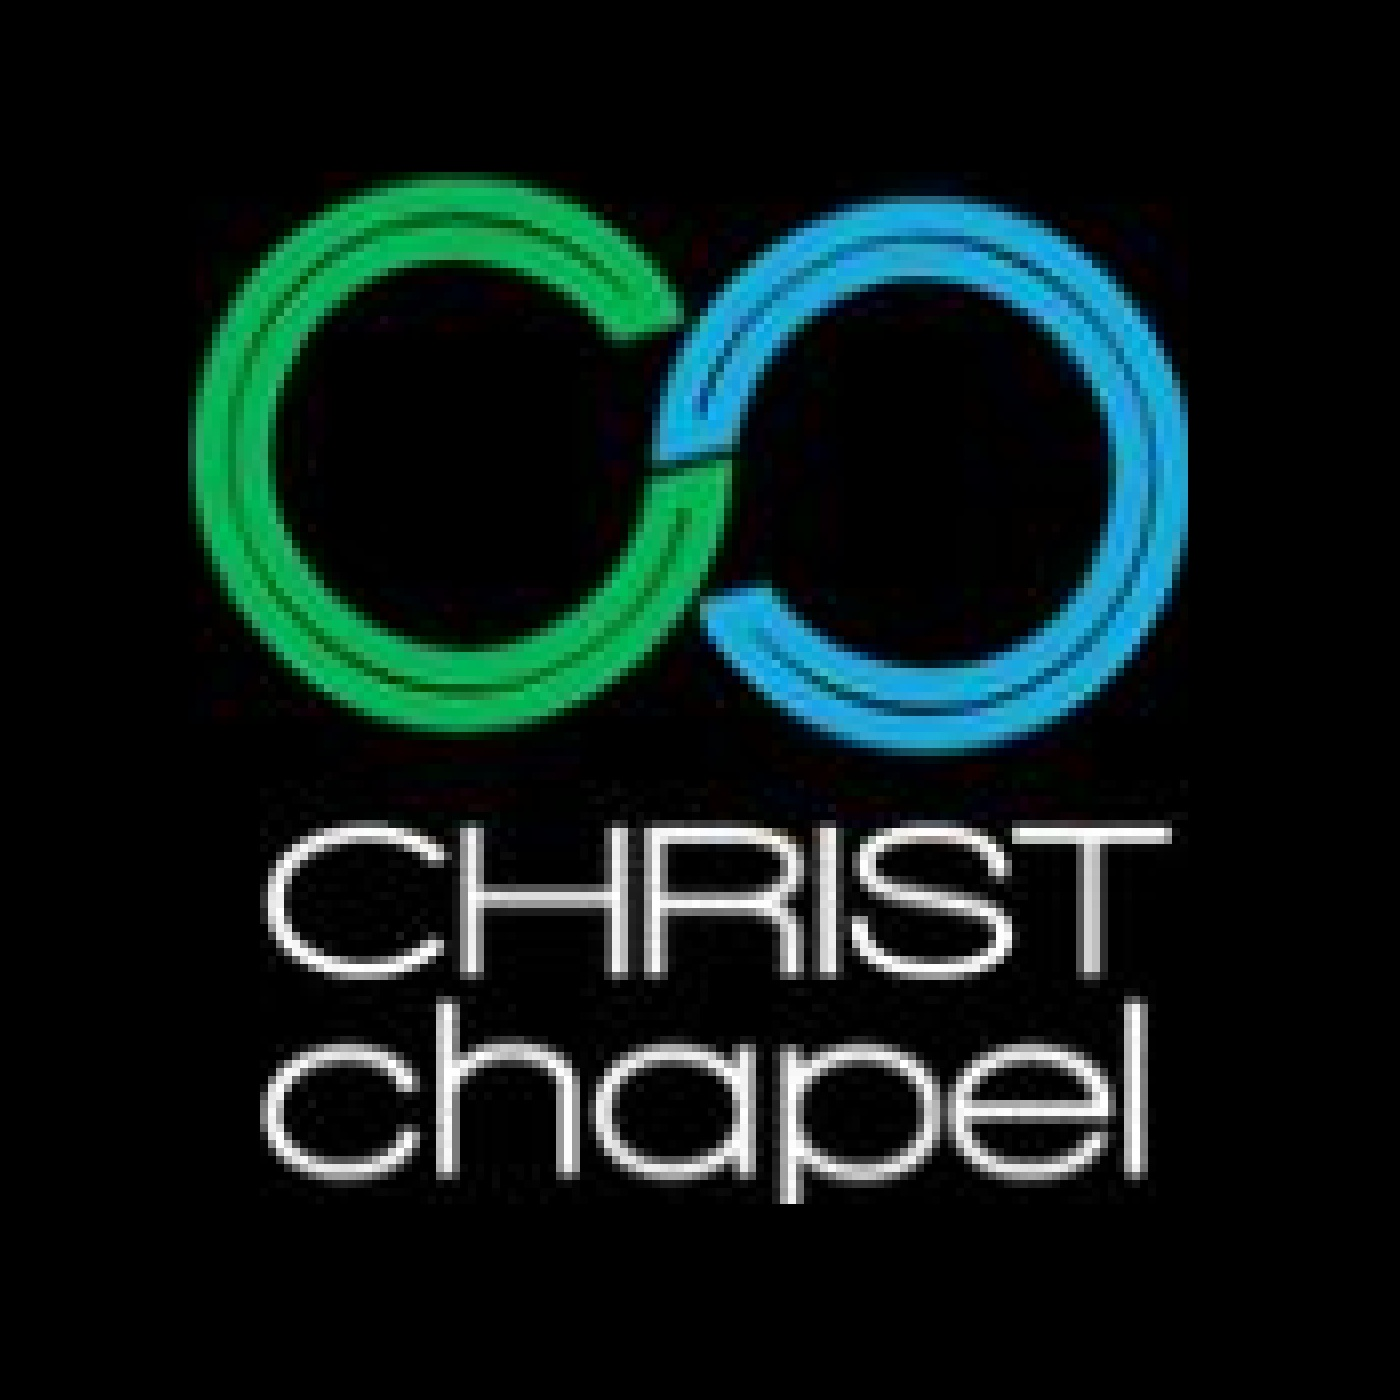 Christ Chapel Audio Podcasts